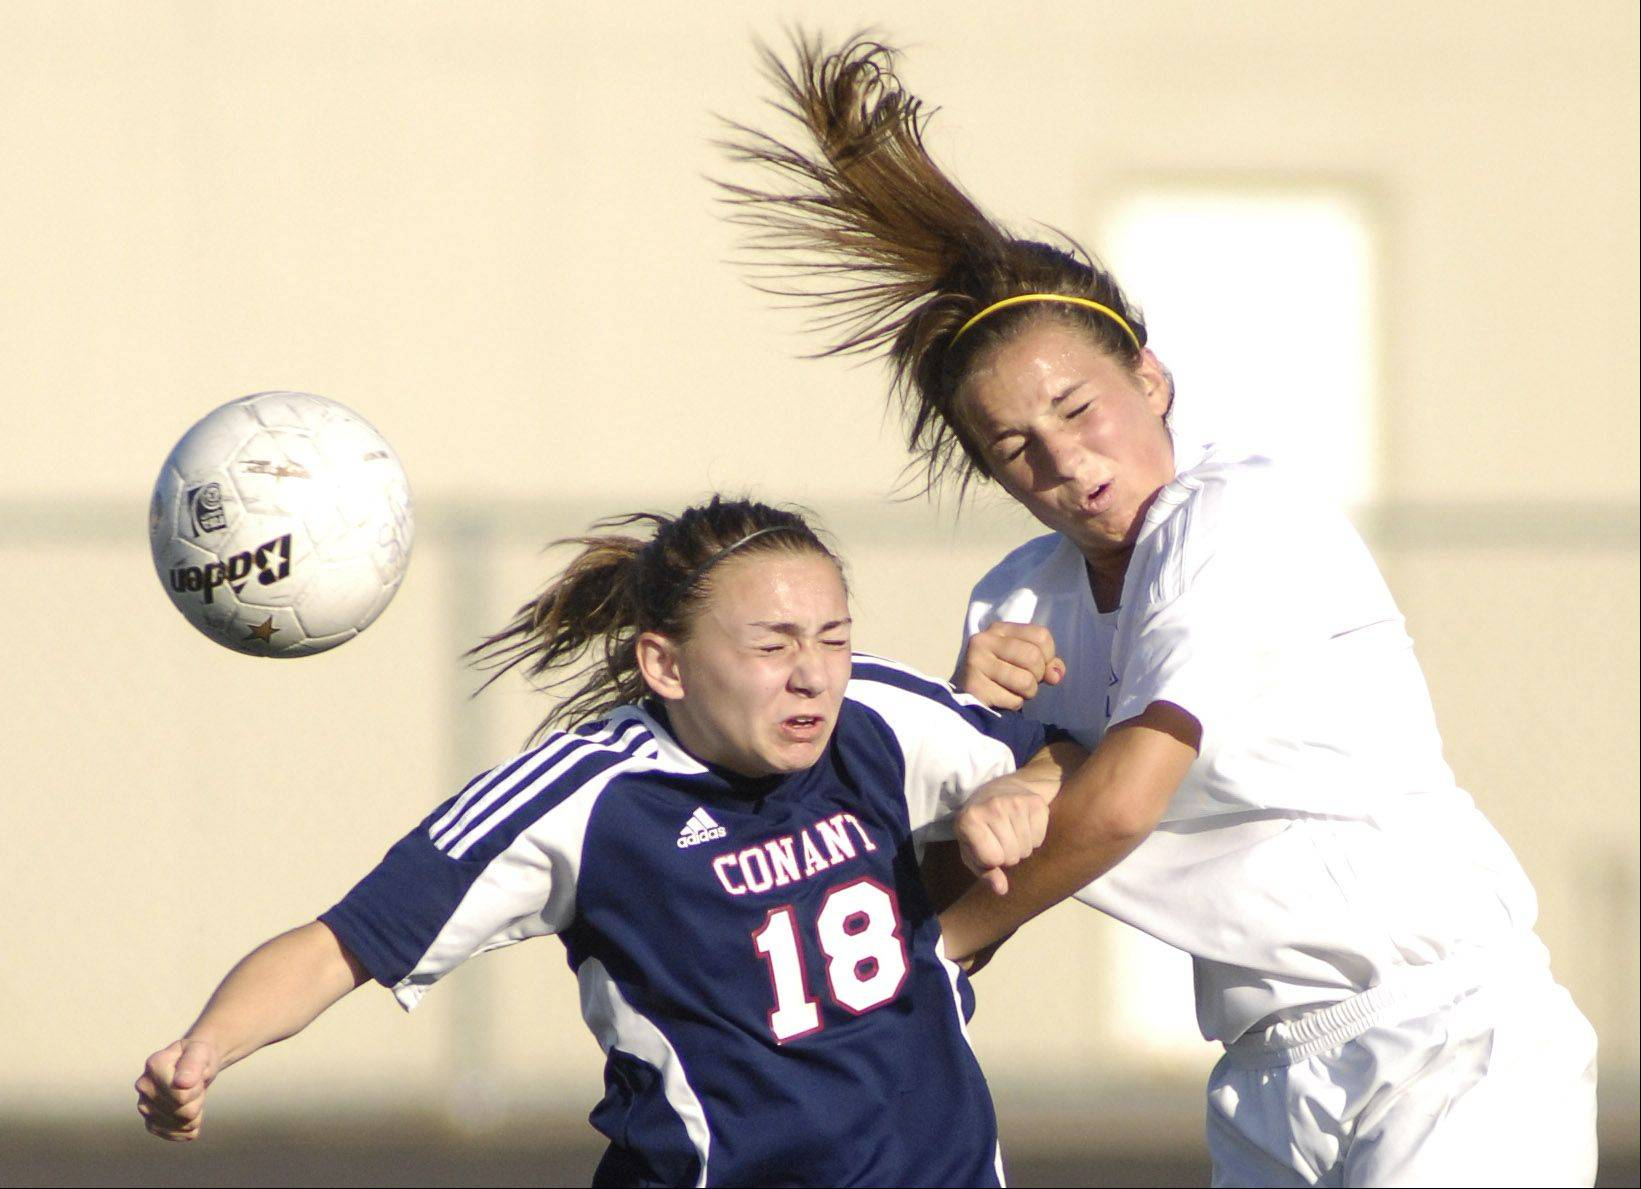 Conant's Courtney Raetzman and St. Charles North's Maryl Behm battle.